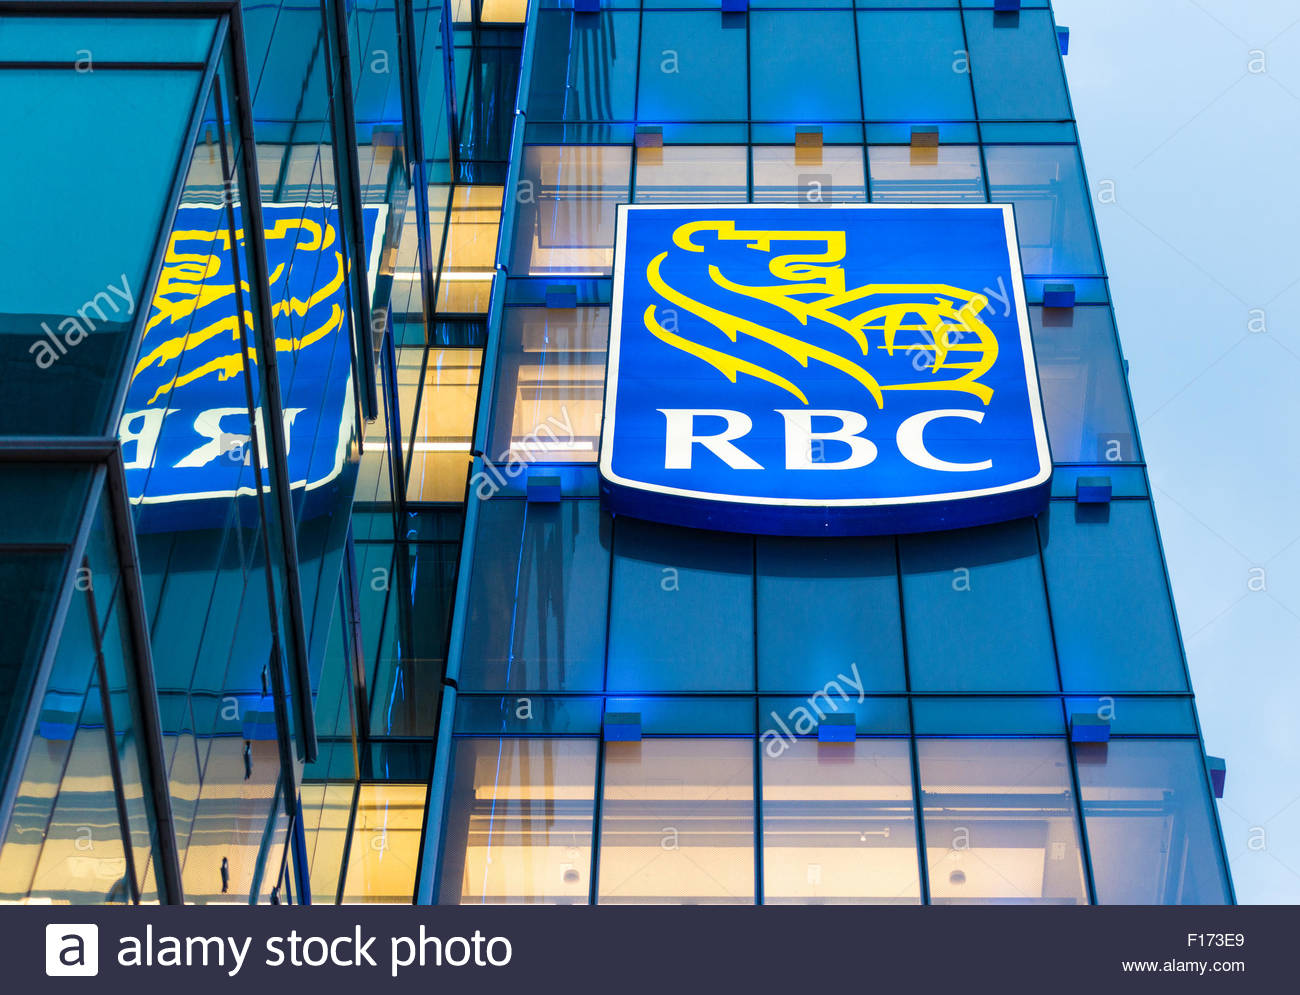 Royal Bank of Canada signage on a glass facade building. The signage has the outline of a lion holding a globe in - Stock Image